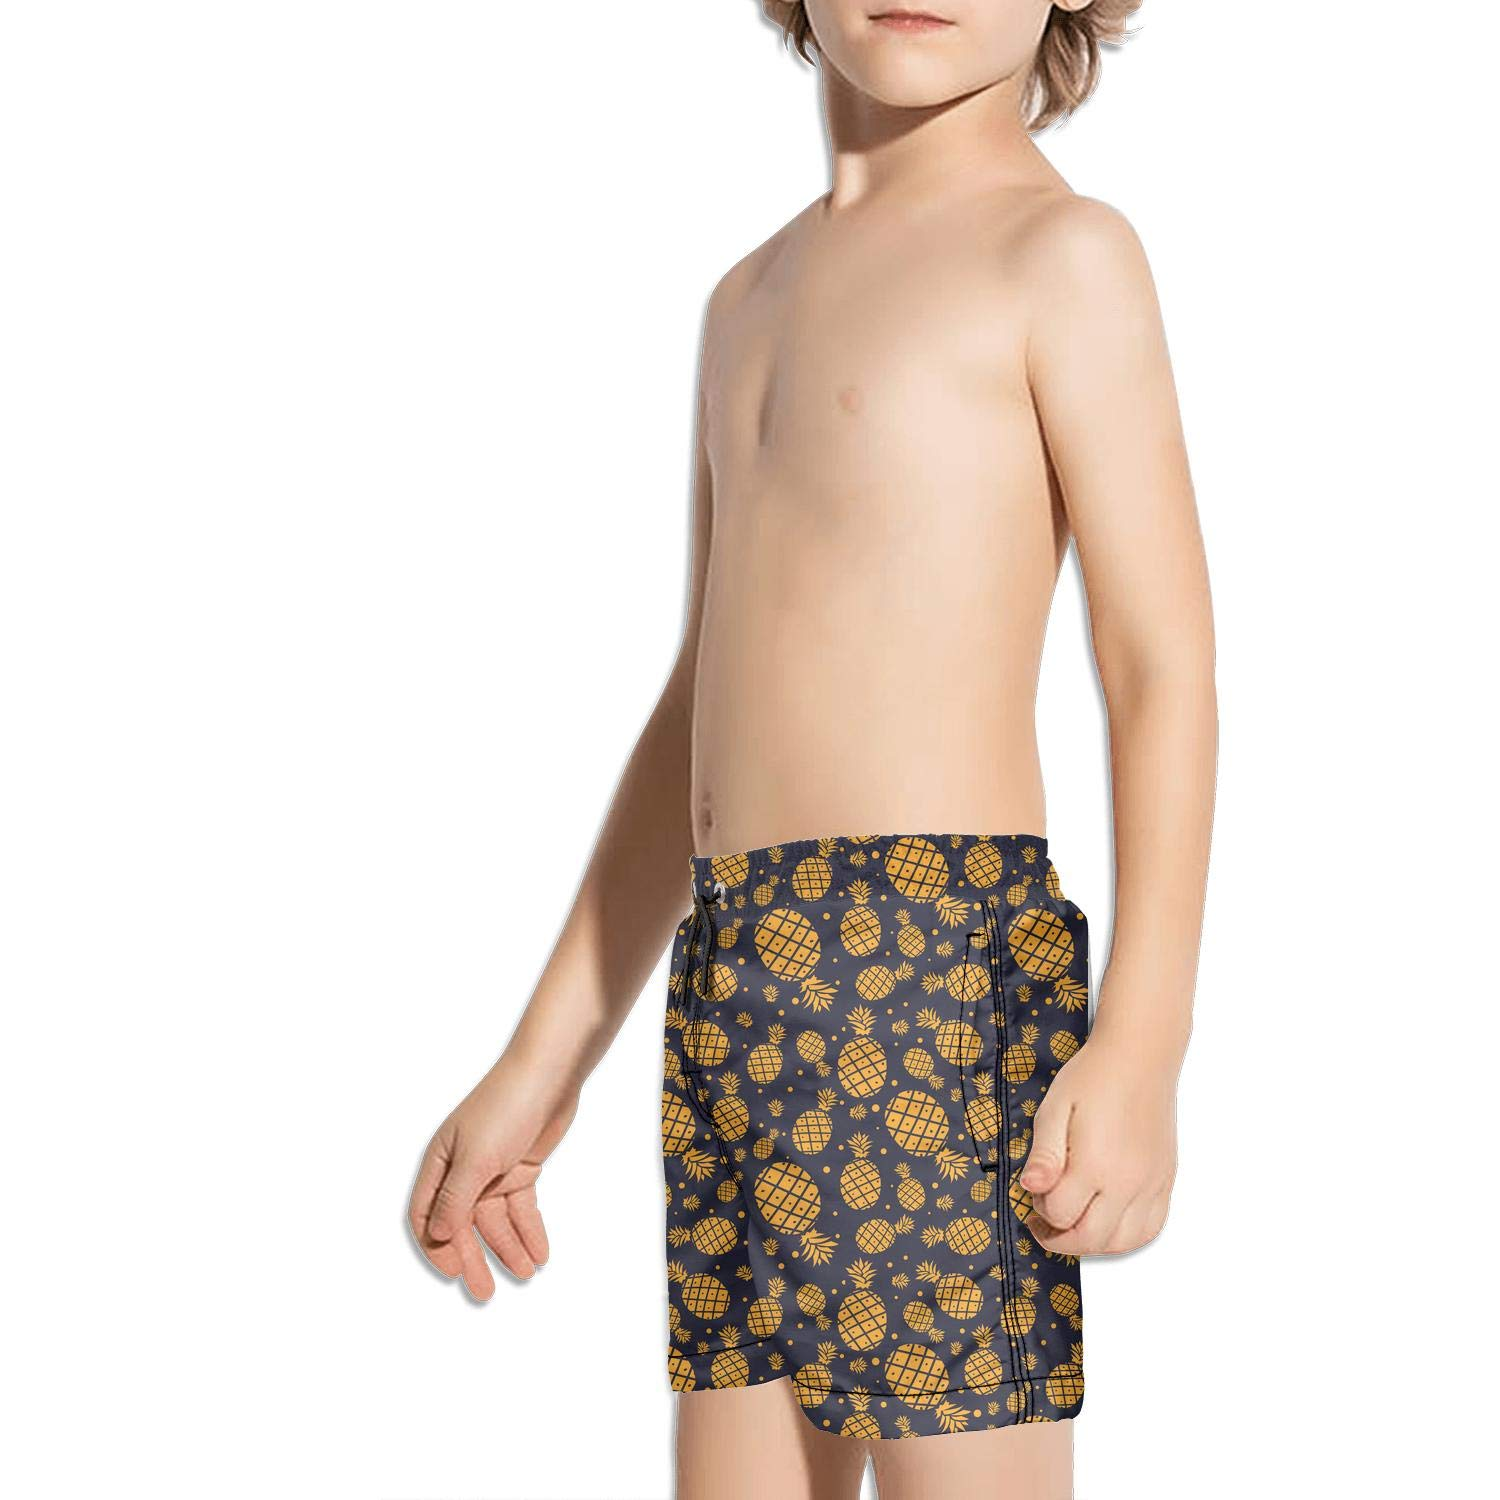 Large and Small Pineapple NAIT.2 Shorts Swim for Kid Quick Dry Beach Adjustable Swimming Tucks Reflex Printed